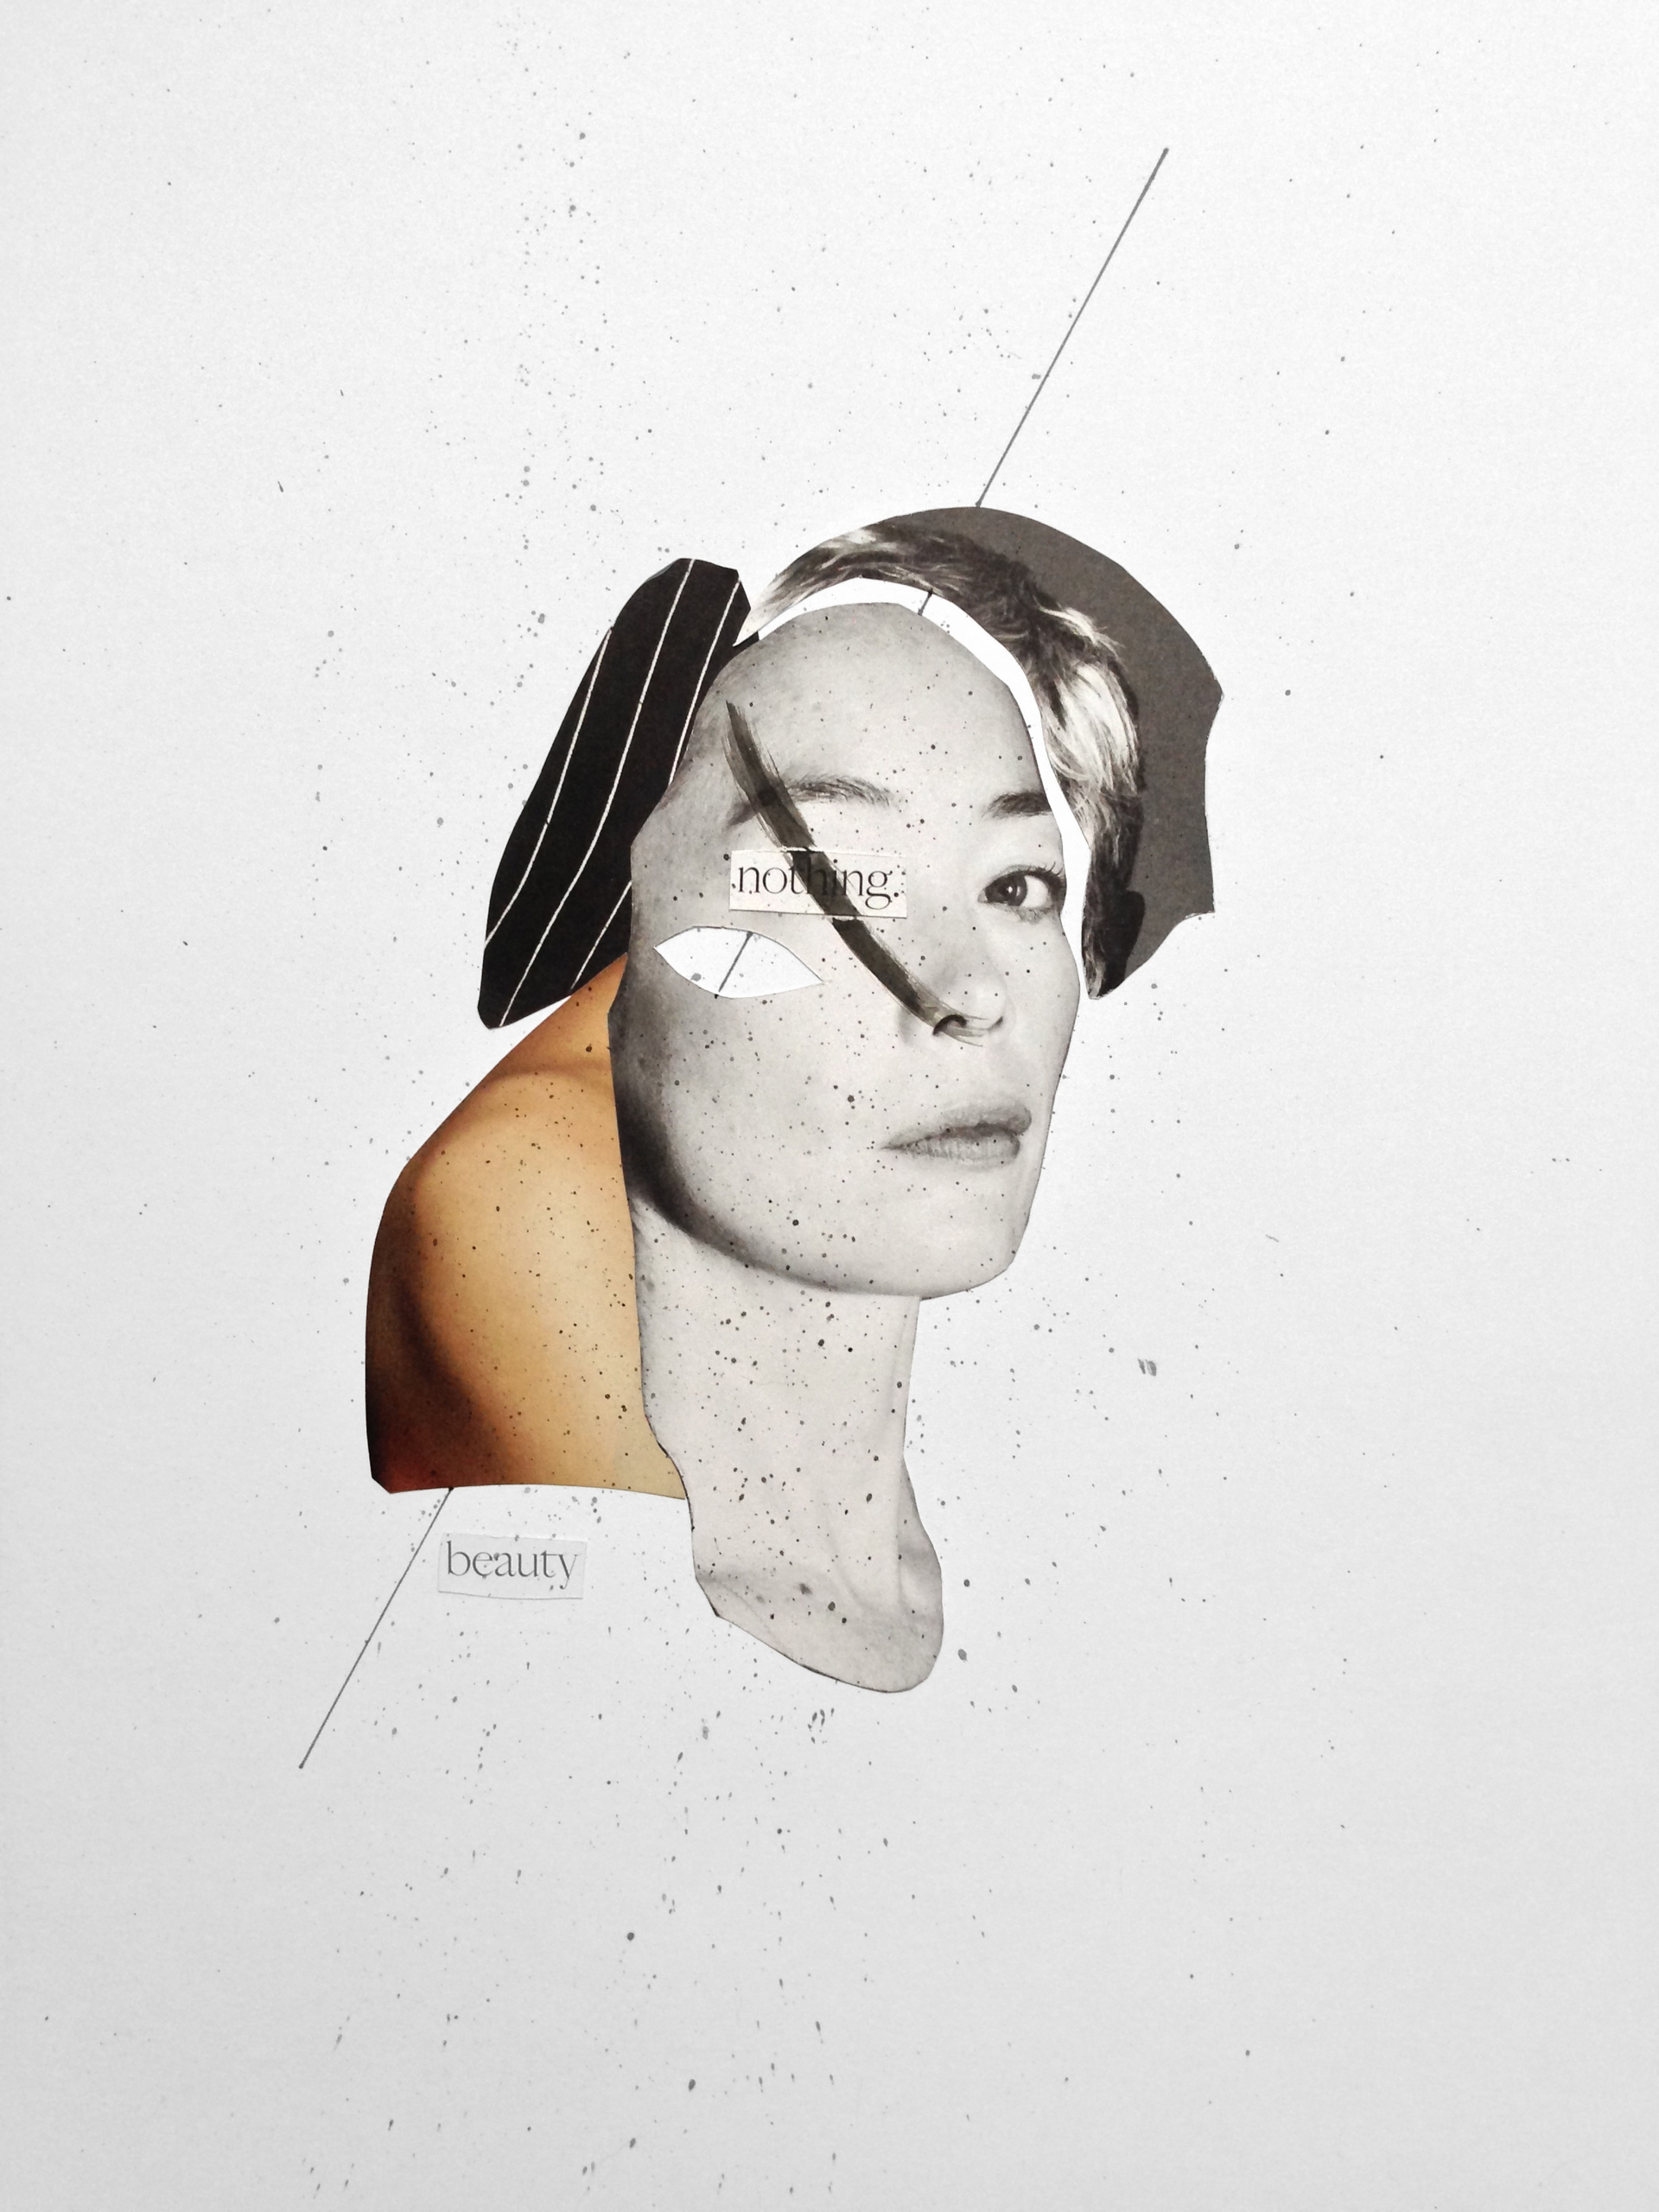 / beauty - collage, papercollage - marianagv | ello